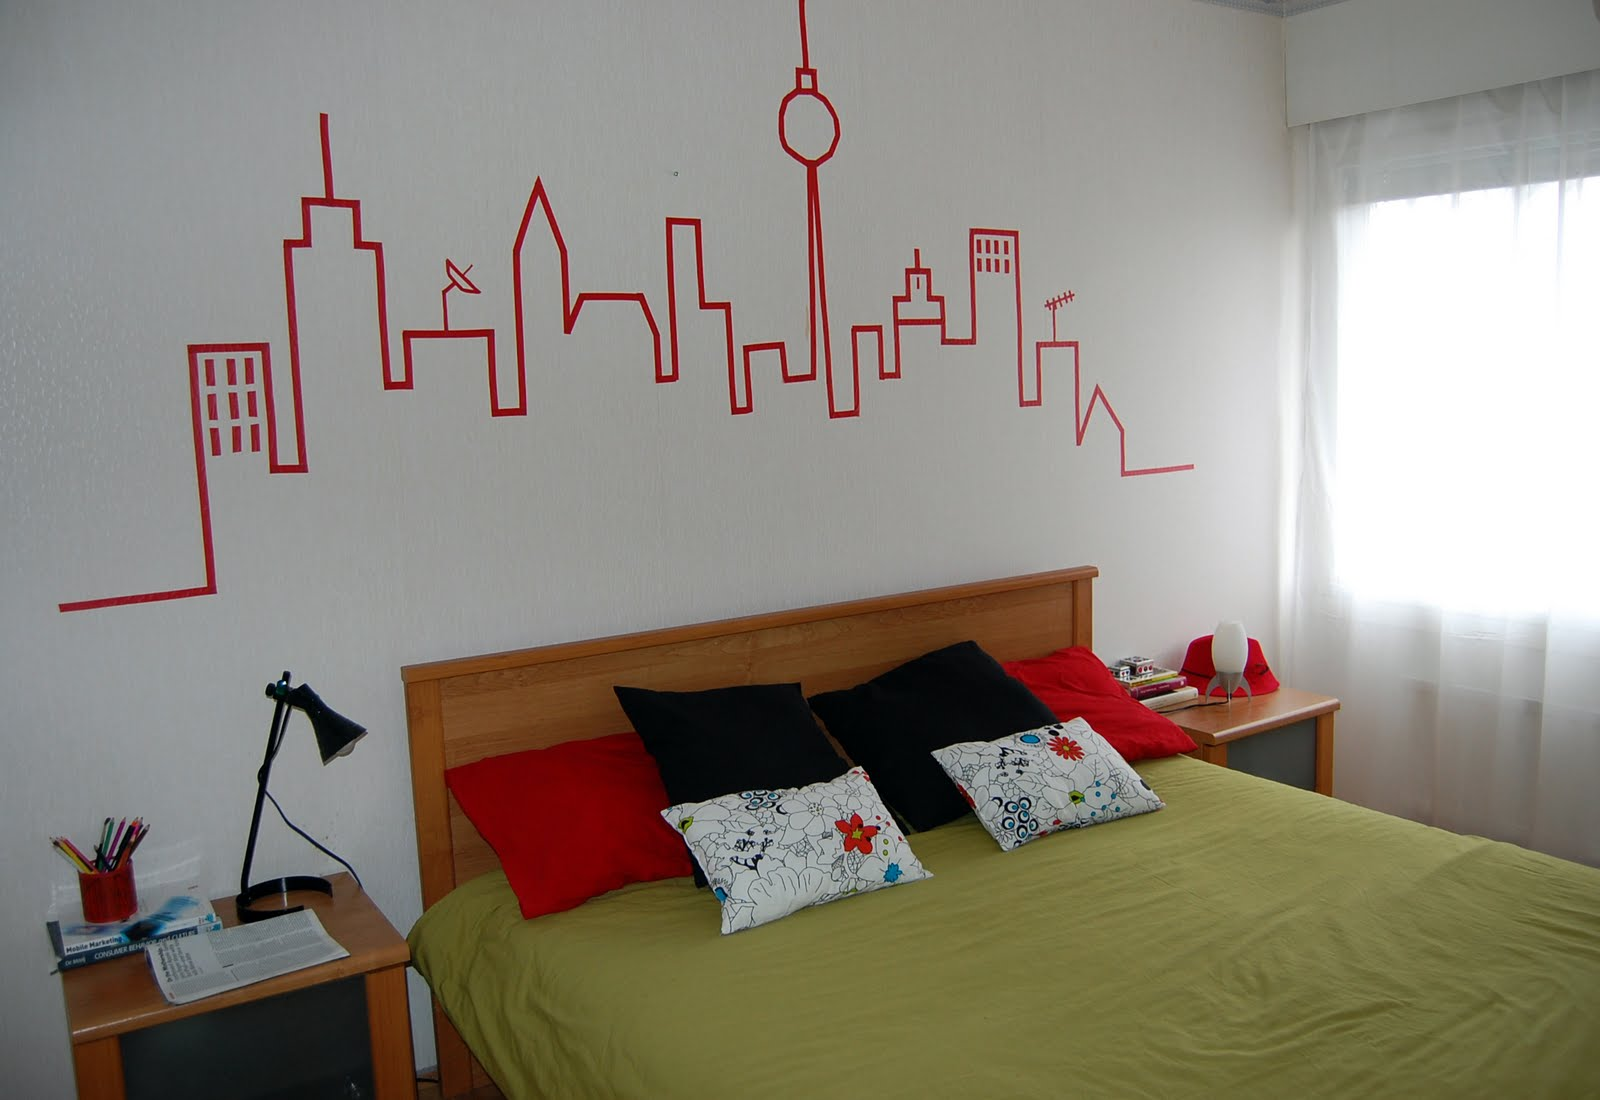 Naifandtastic decoraci n craft hecho a mano - Ideas para pintar una pared ...